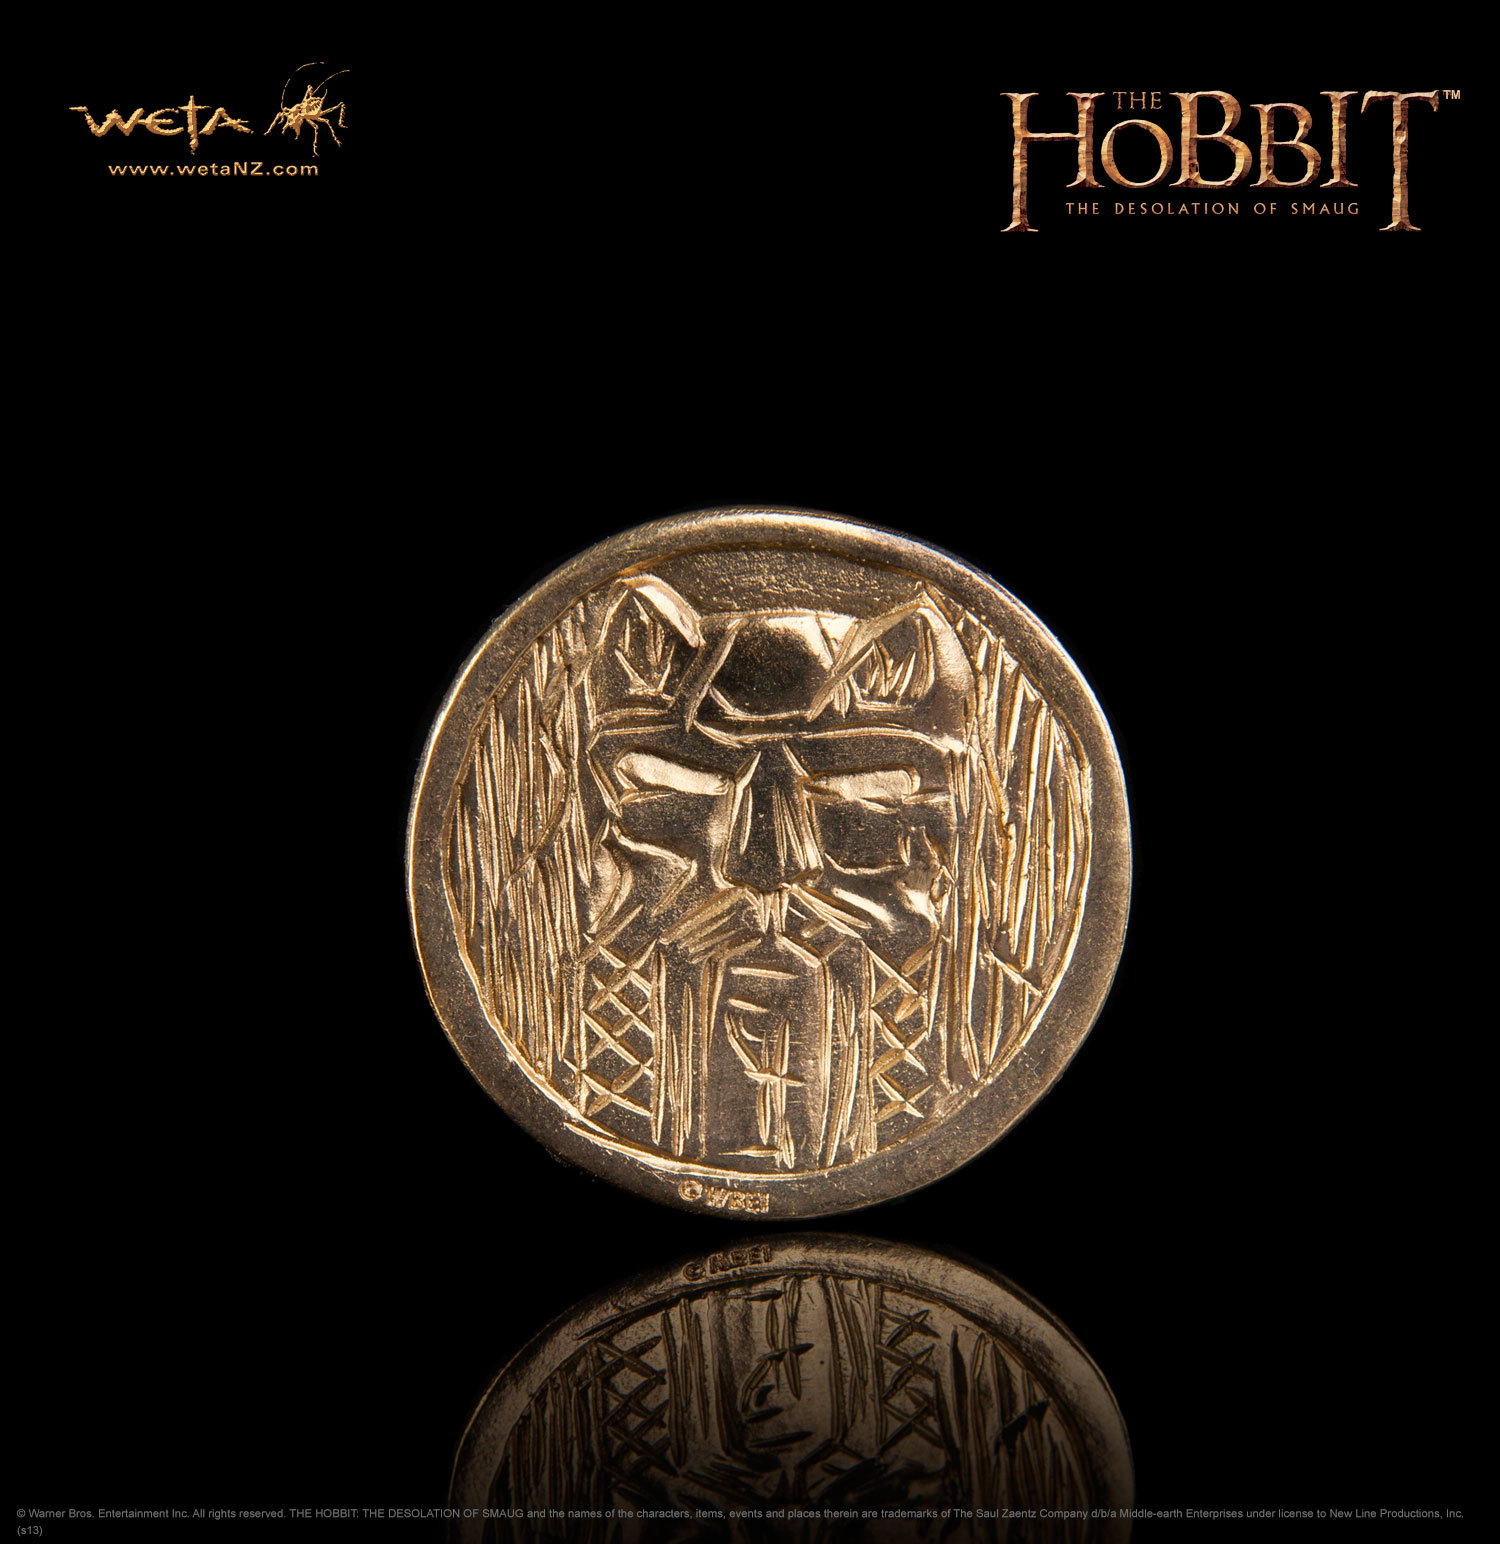 The Hobbit: Desolation of Smaug Treasure Coin #5 - by Weta image